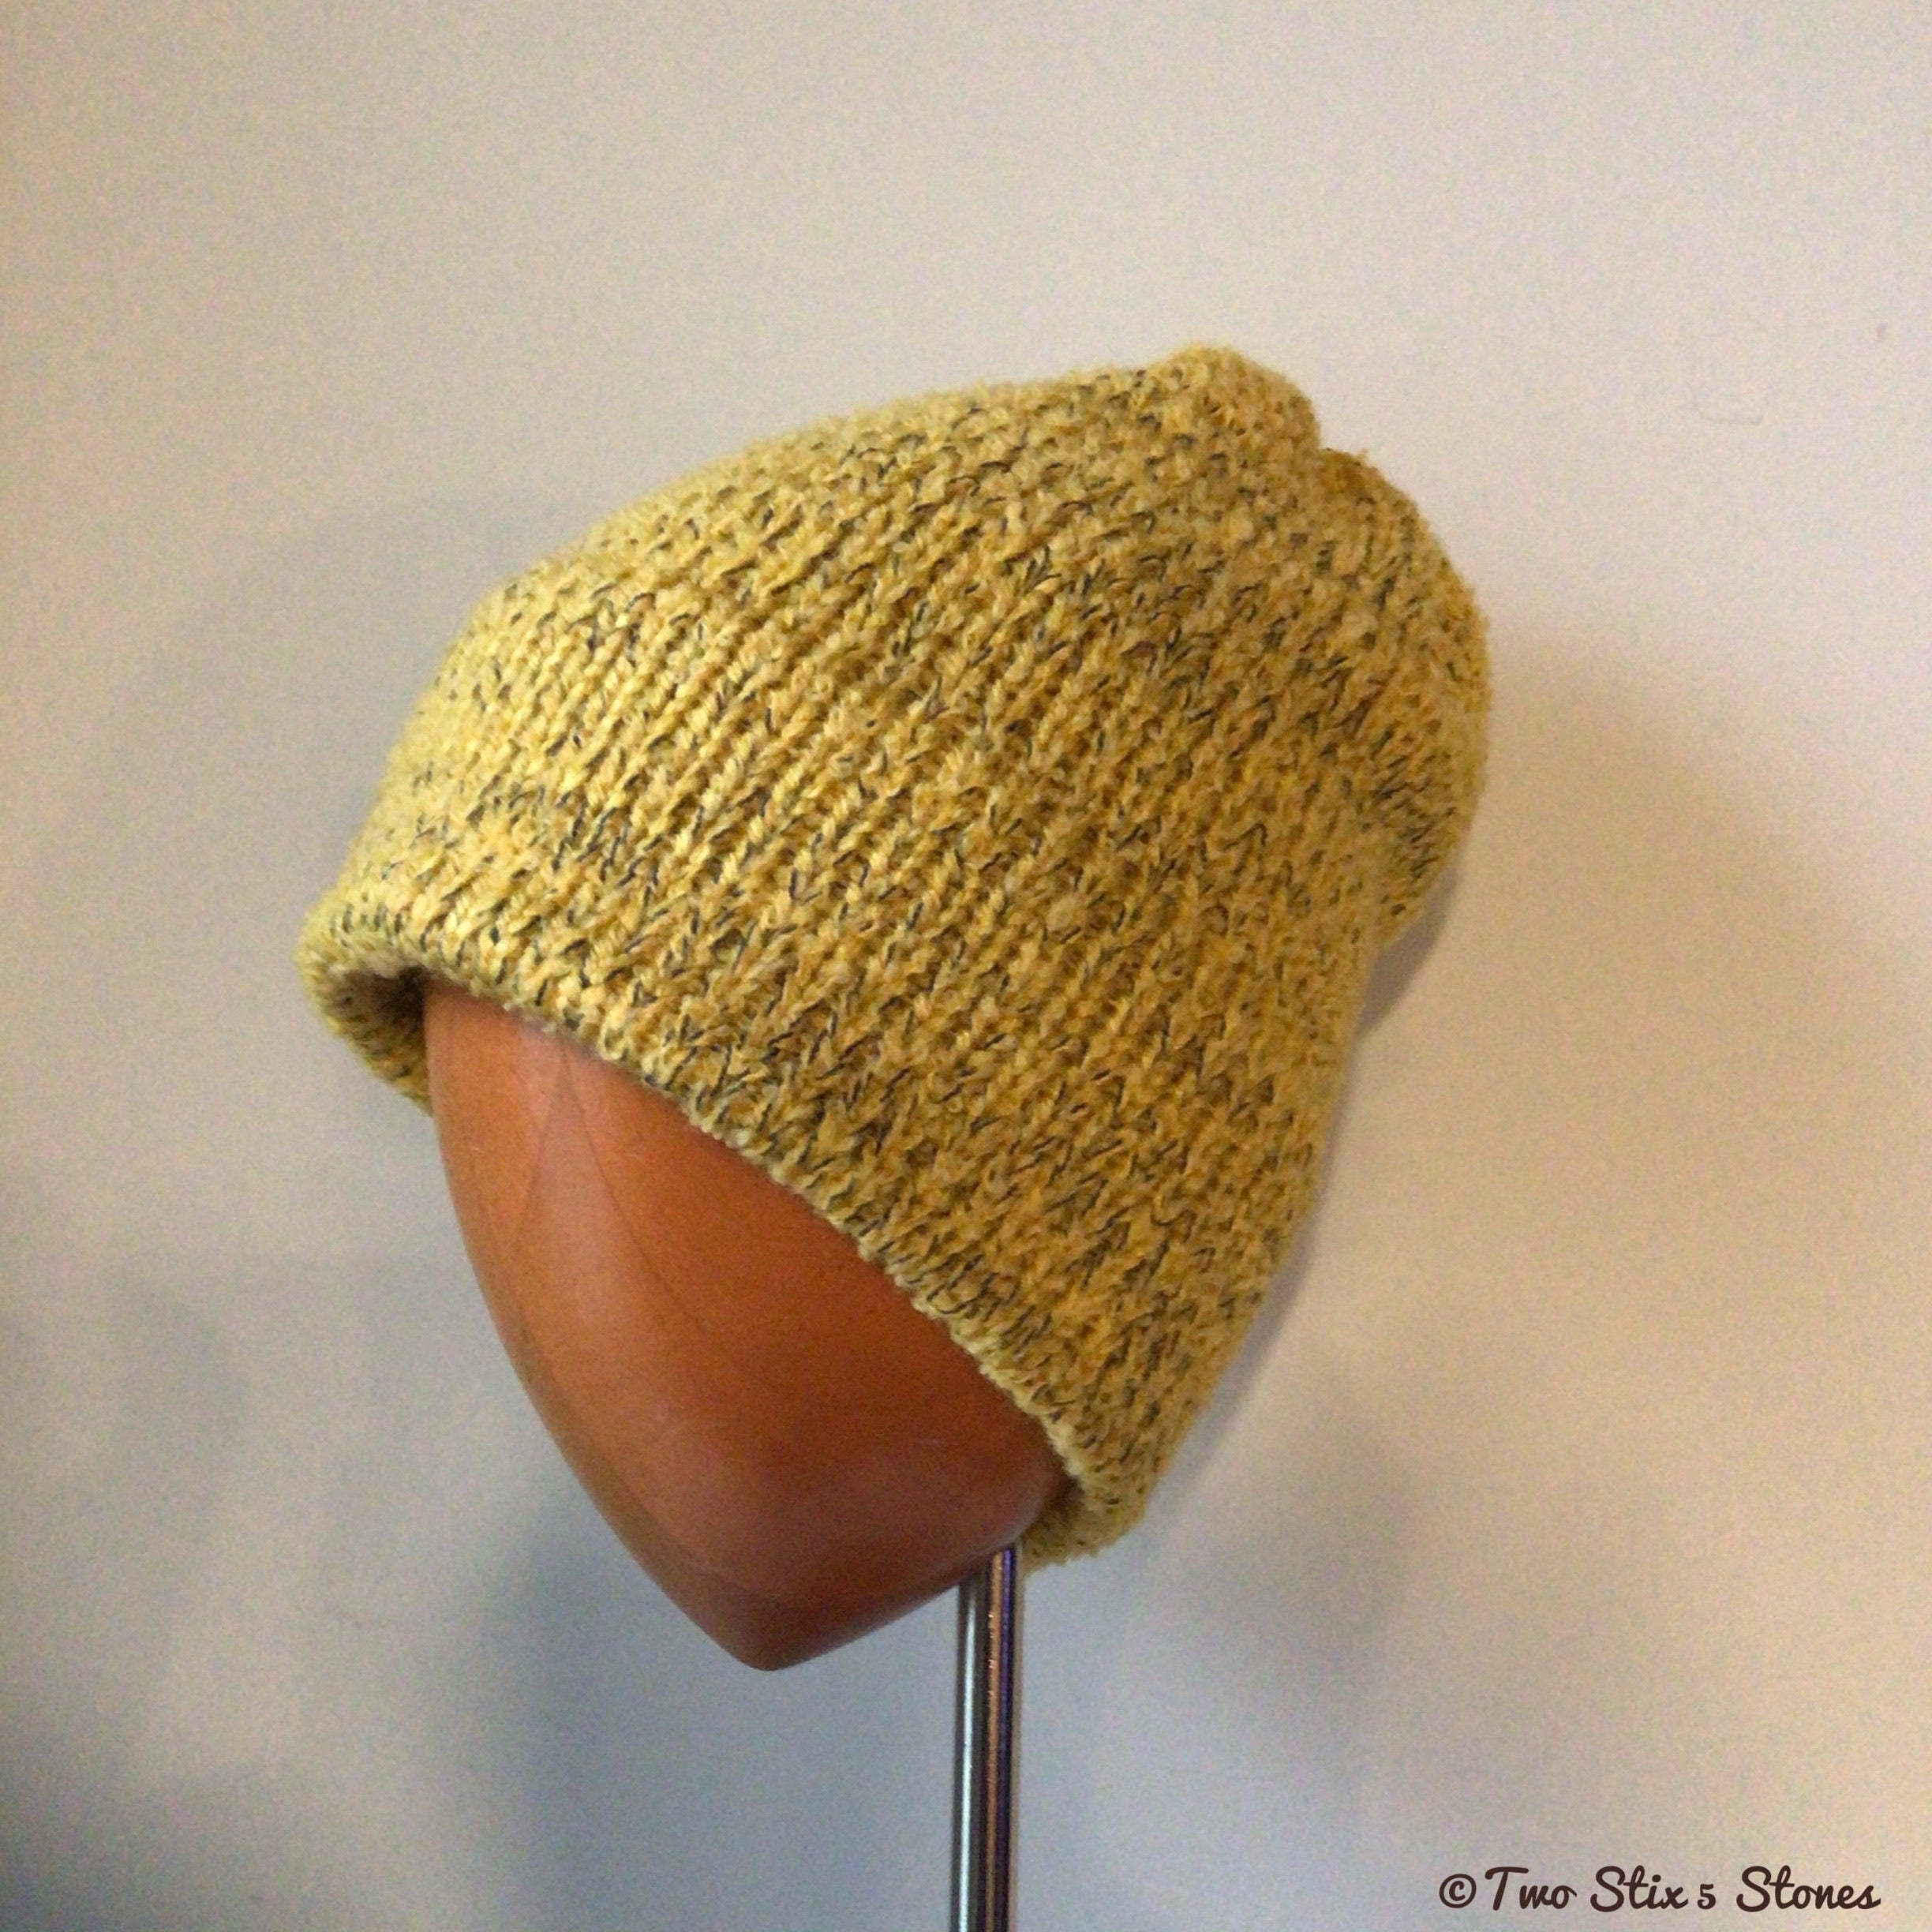 Unisex Mustard Tweed Knit Beanie